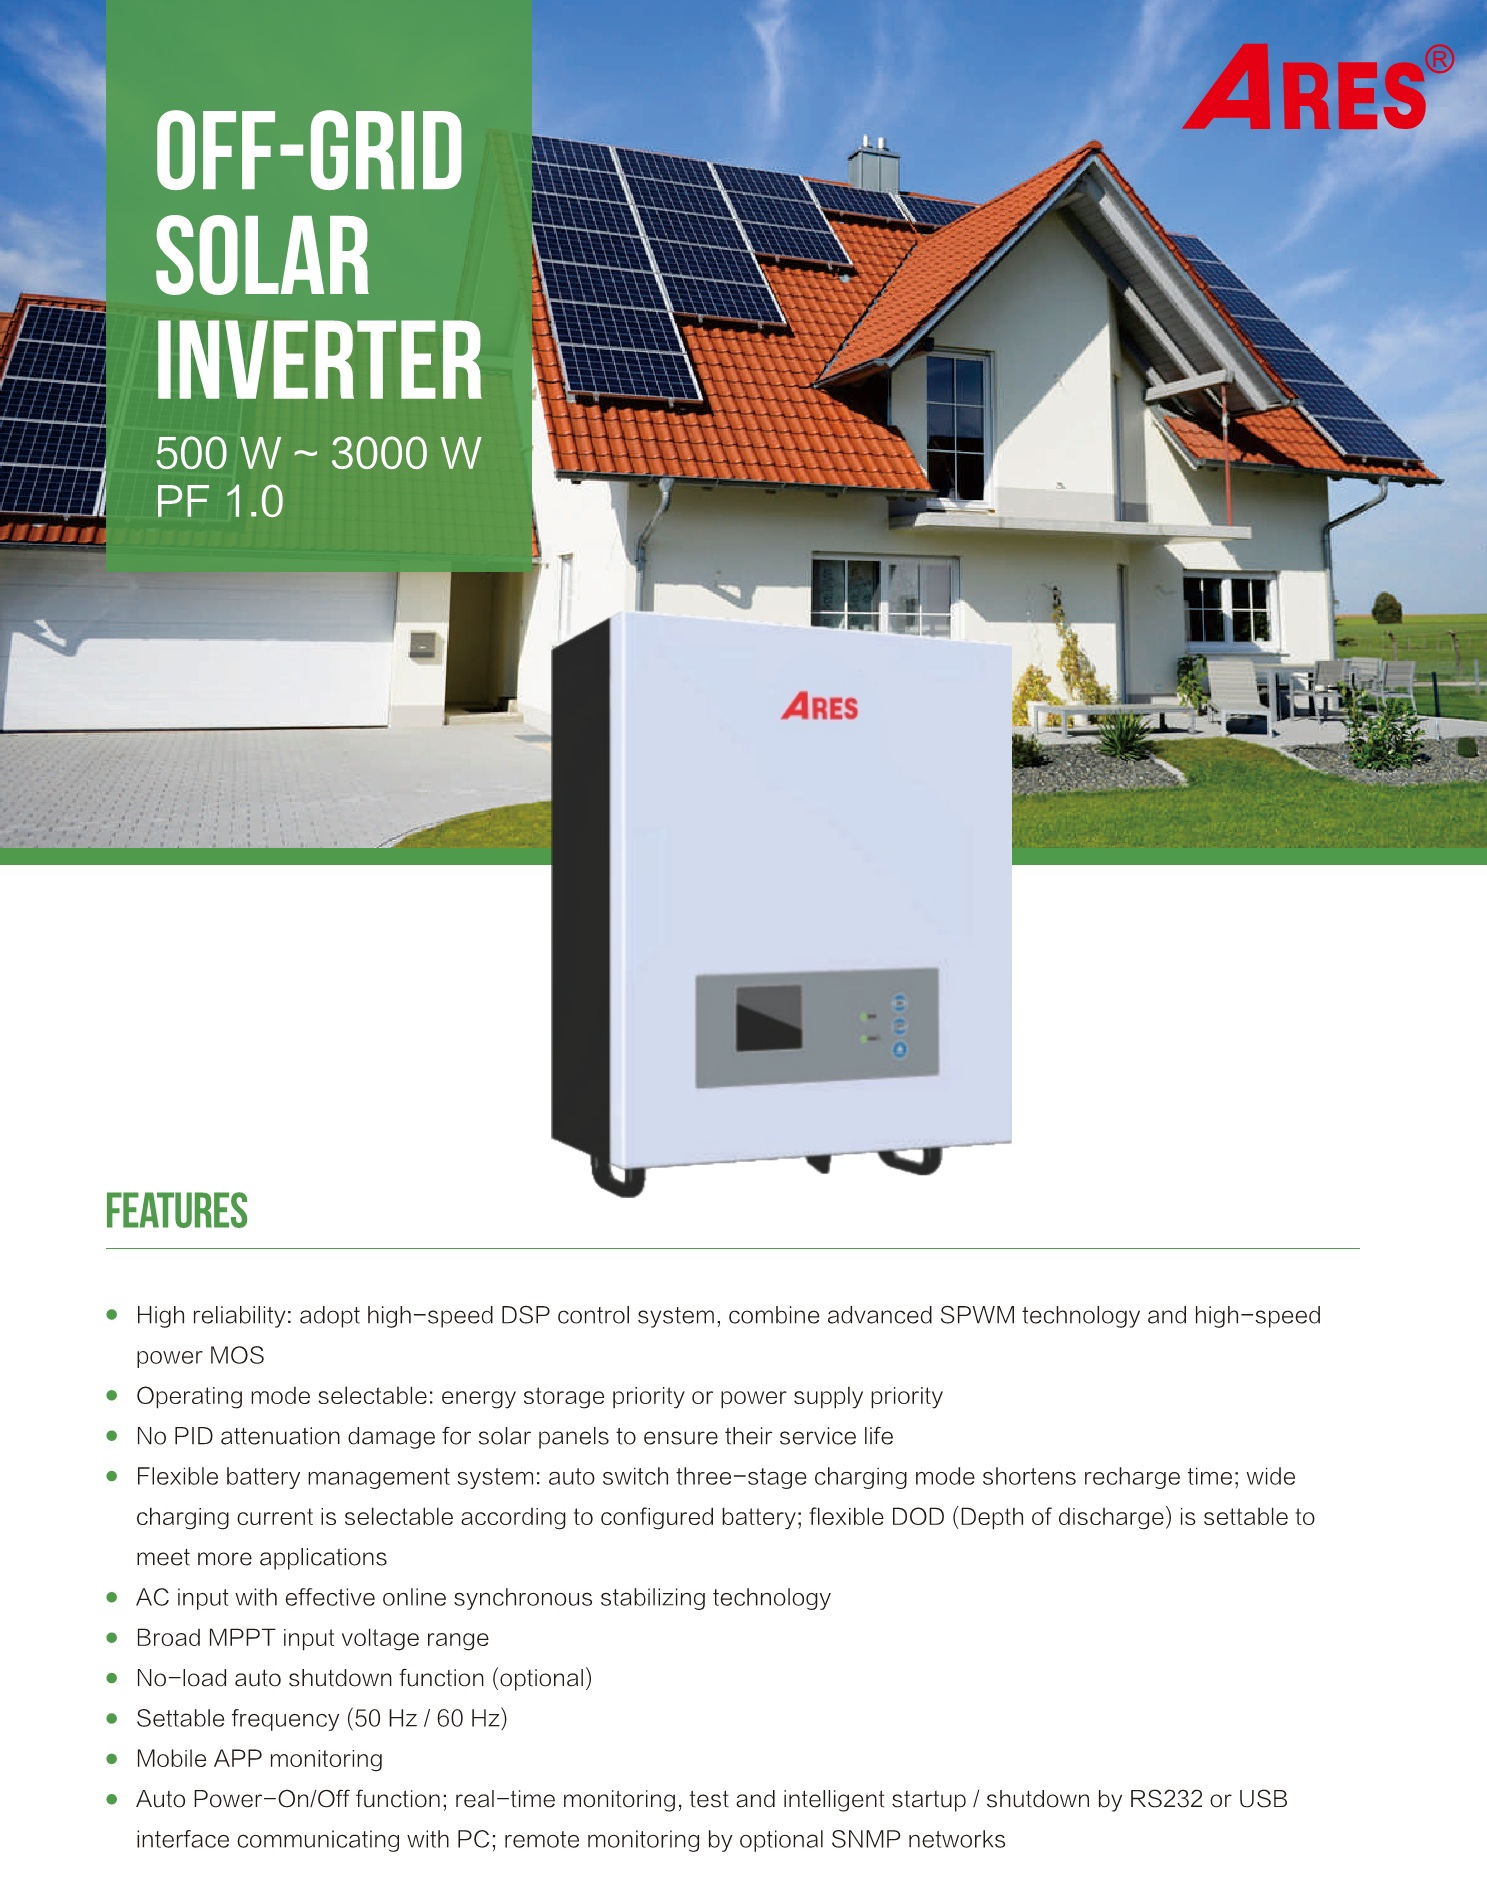 ARES-Off-Grid-Solar-Inverter-500W-3kW-PF-1